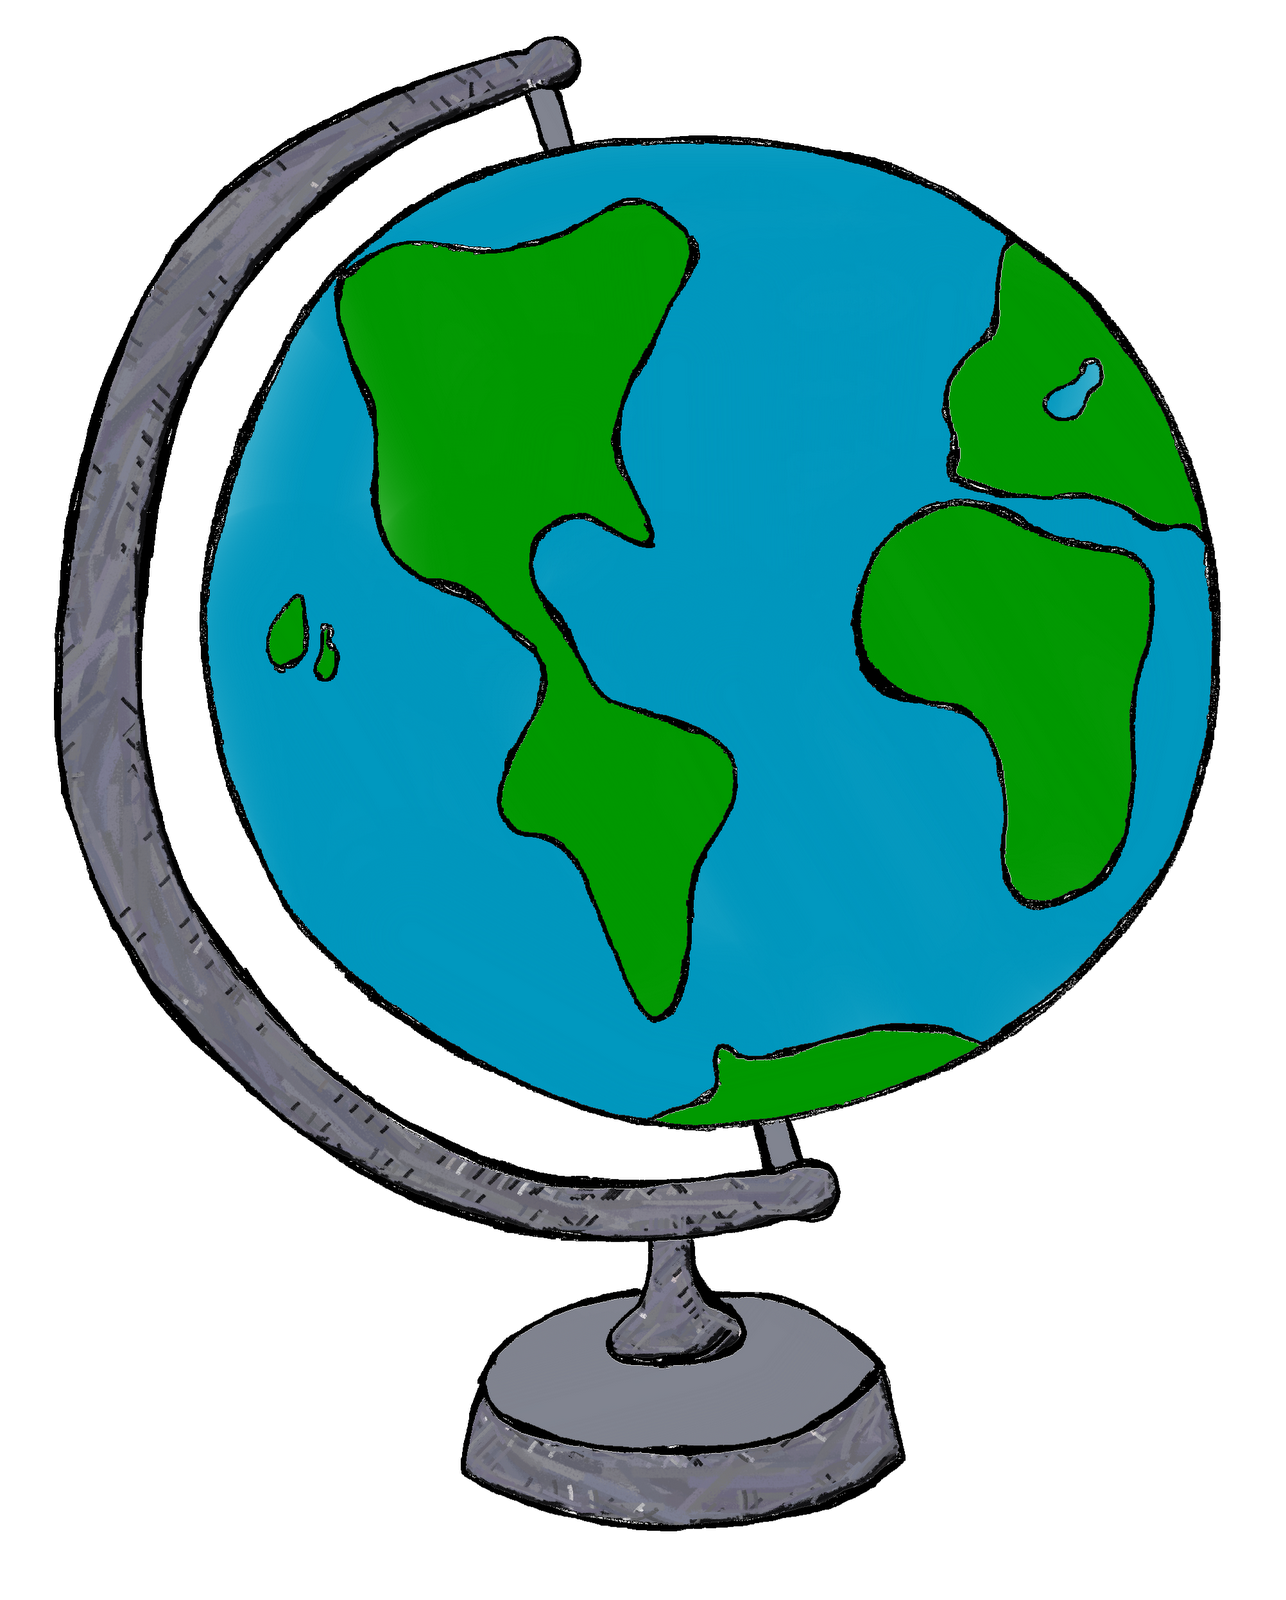 Geography Clipart Globe.